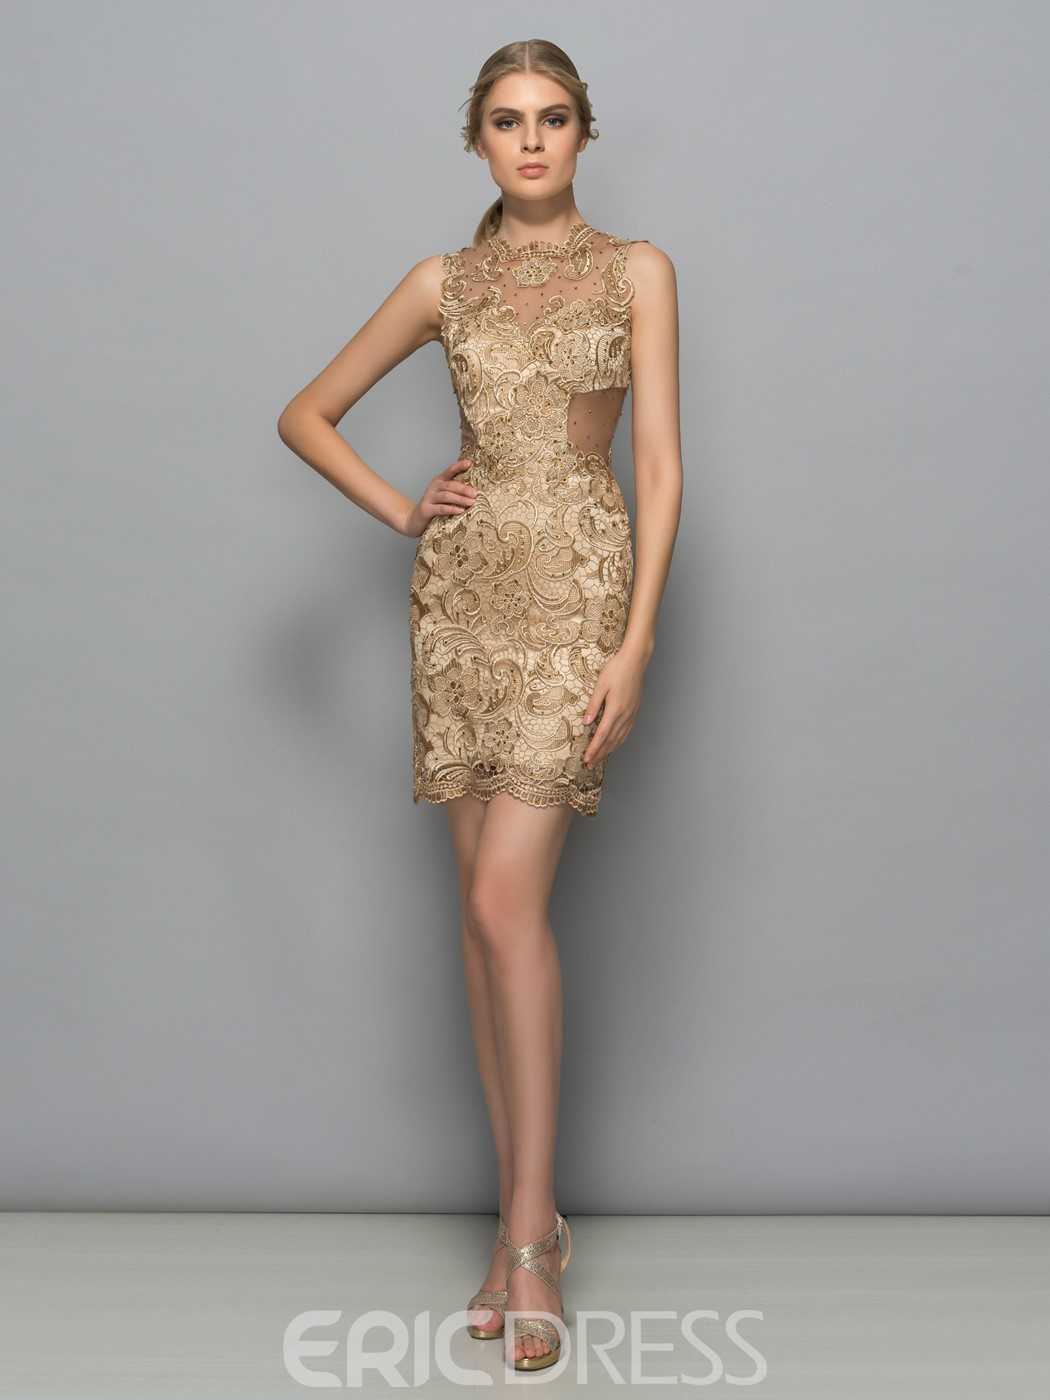 Ericdress Sheath Jewel Neck Lace Sleeveless Knee-Length Cocktail Dress